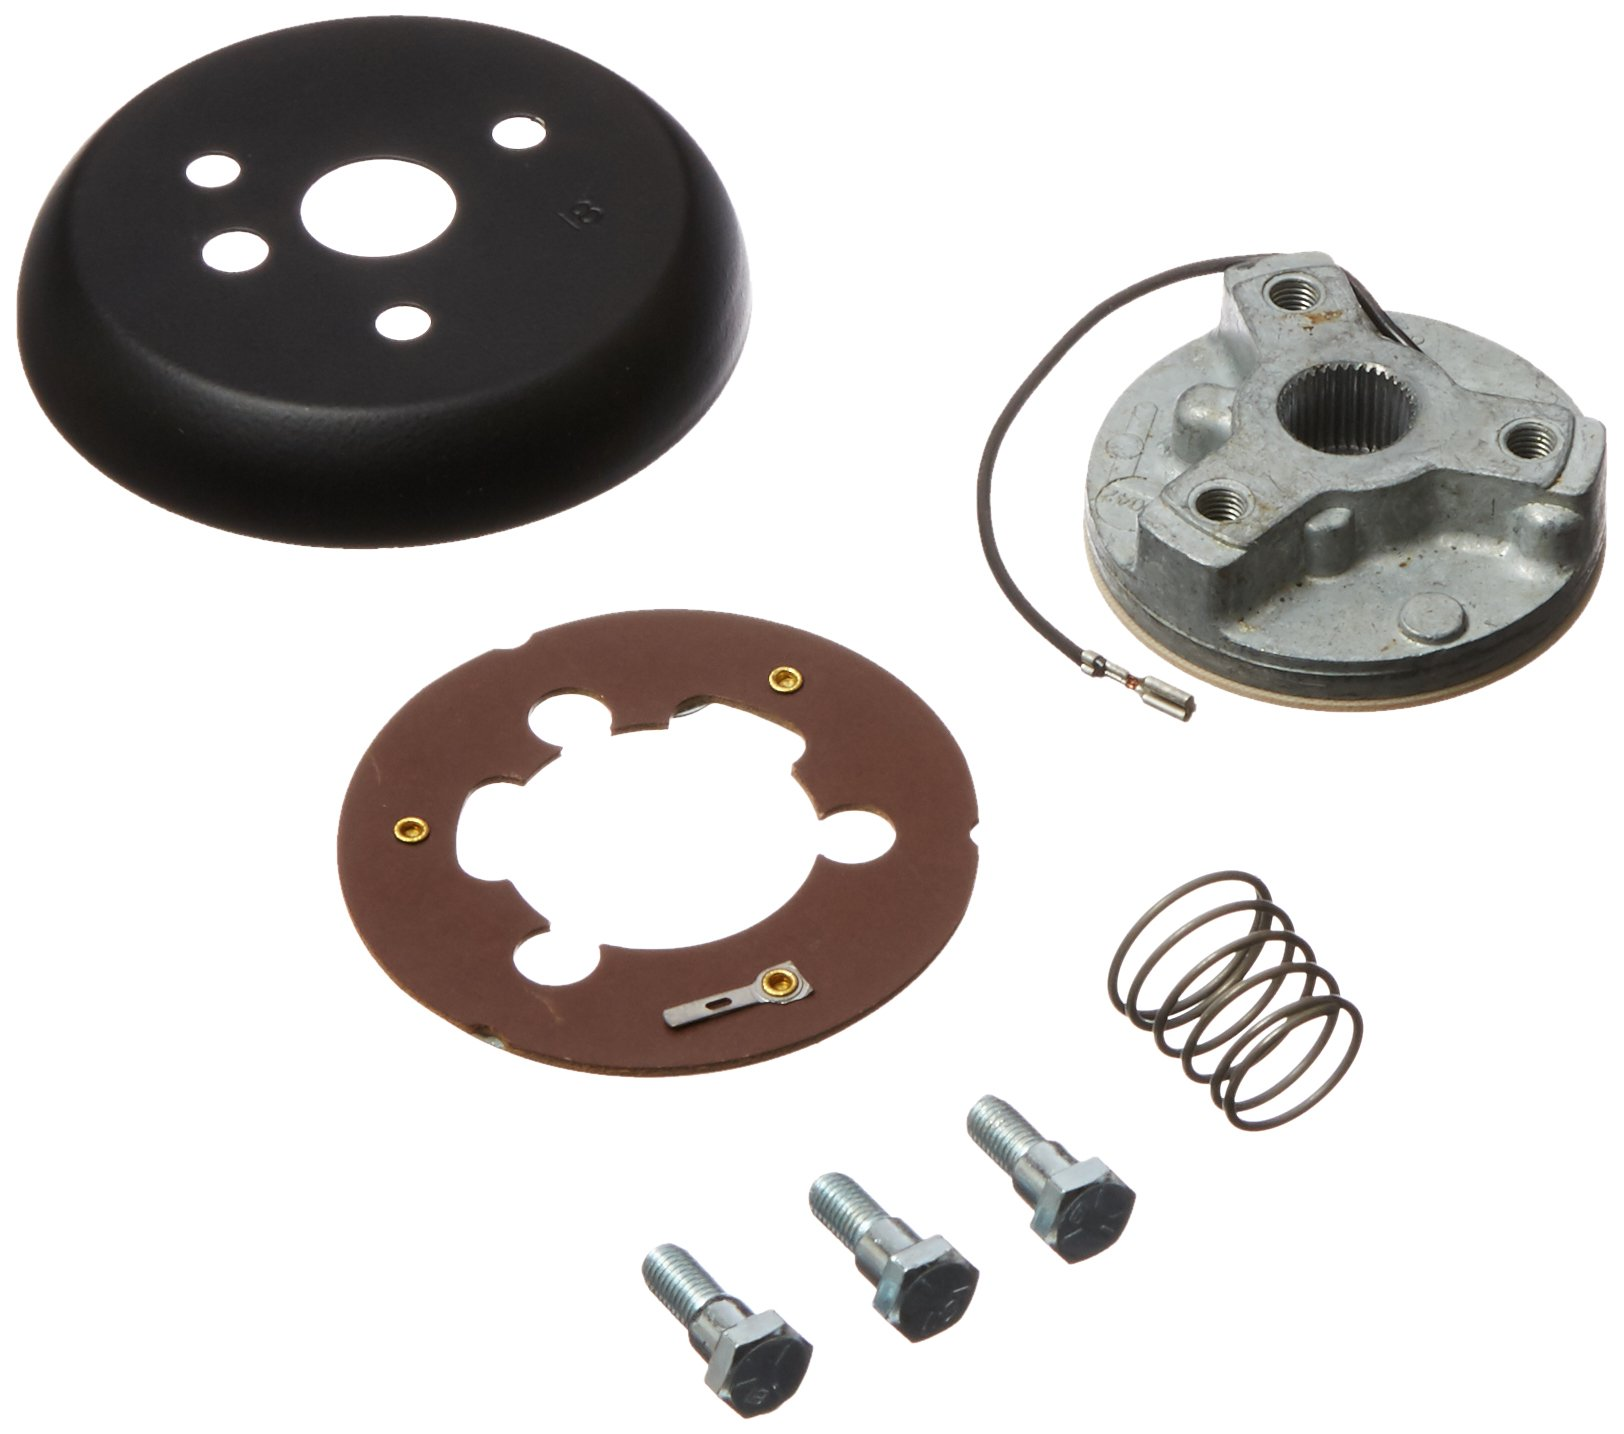 Grant Products 3597 Installation Kit